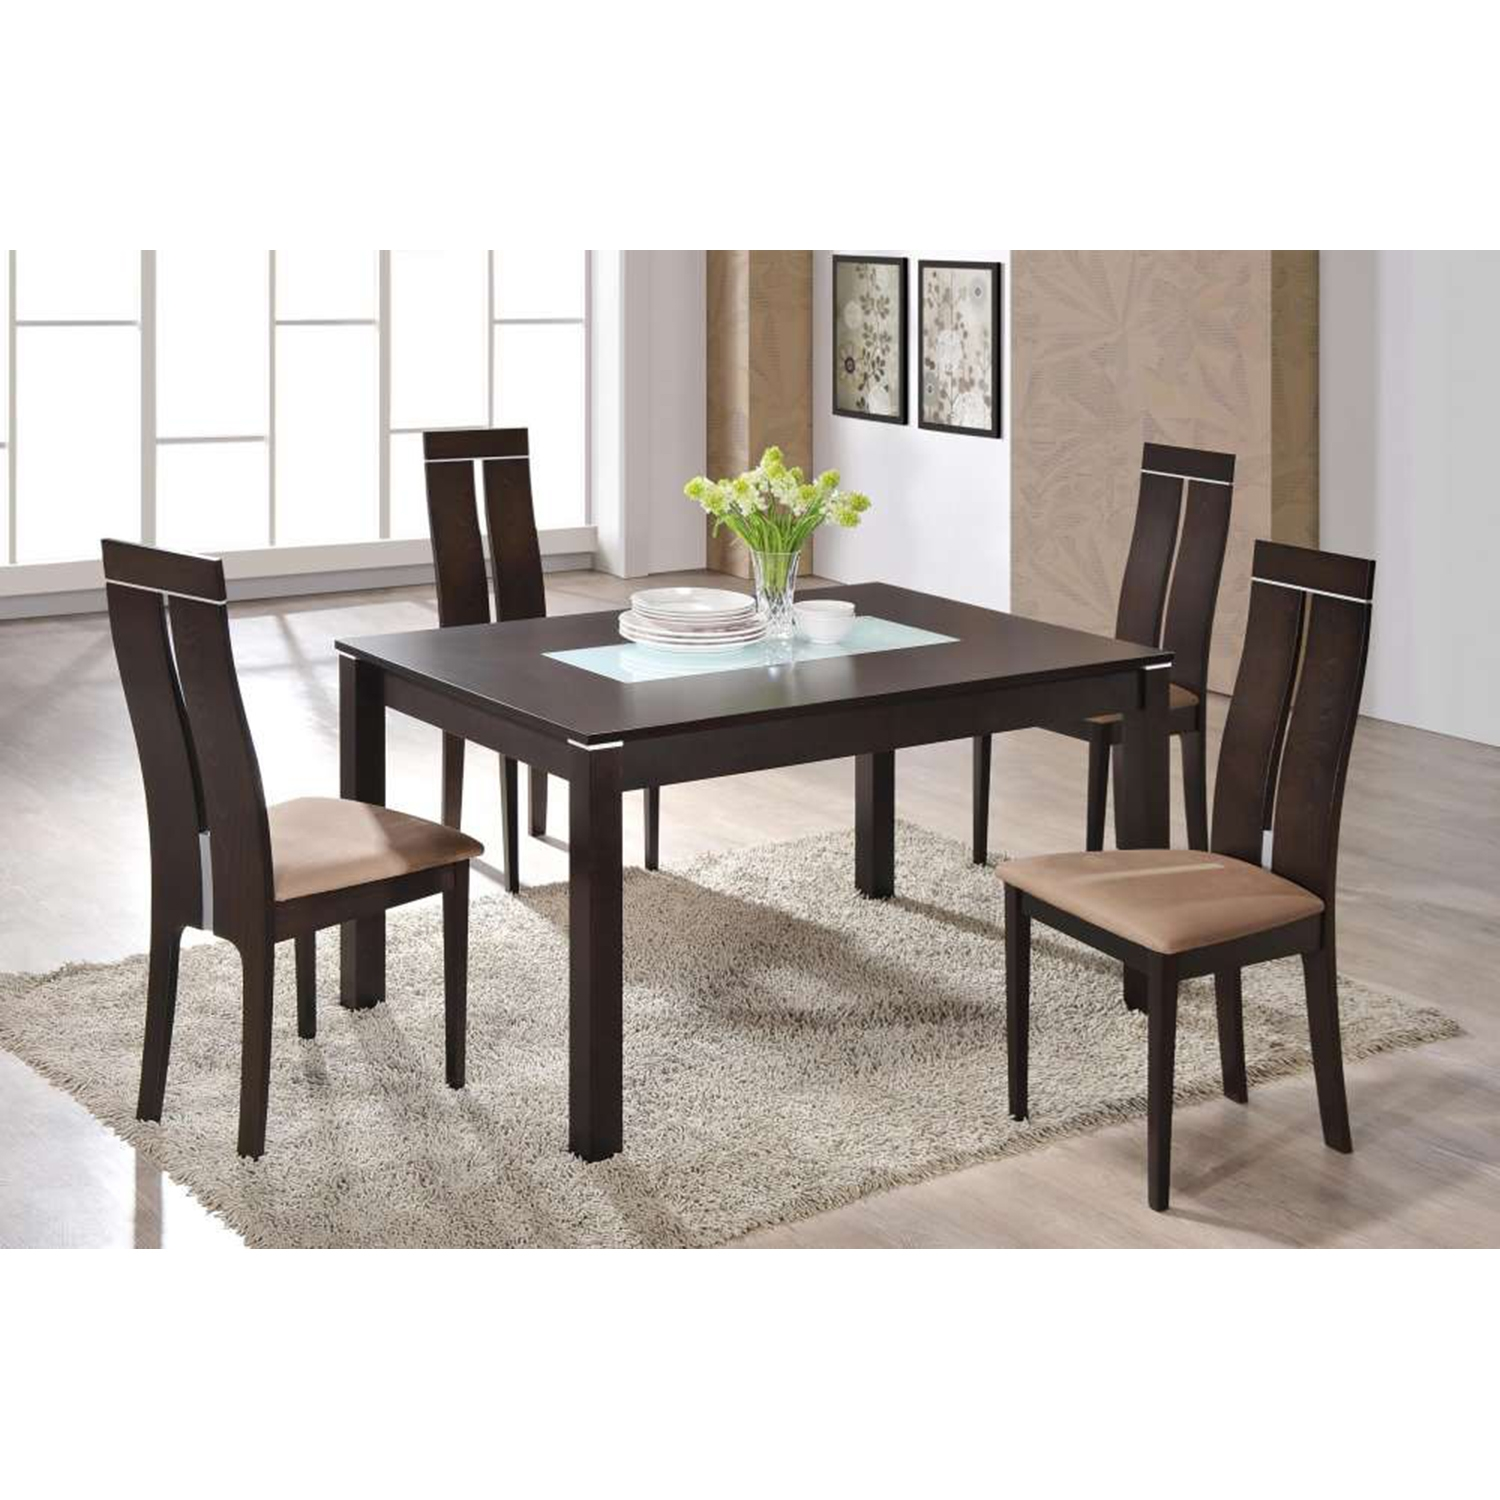 Lillian Extension Dining Table, Dark Walnut - GLO-D6948-DT-M